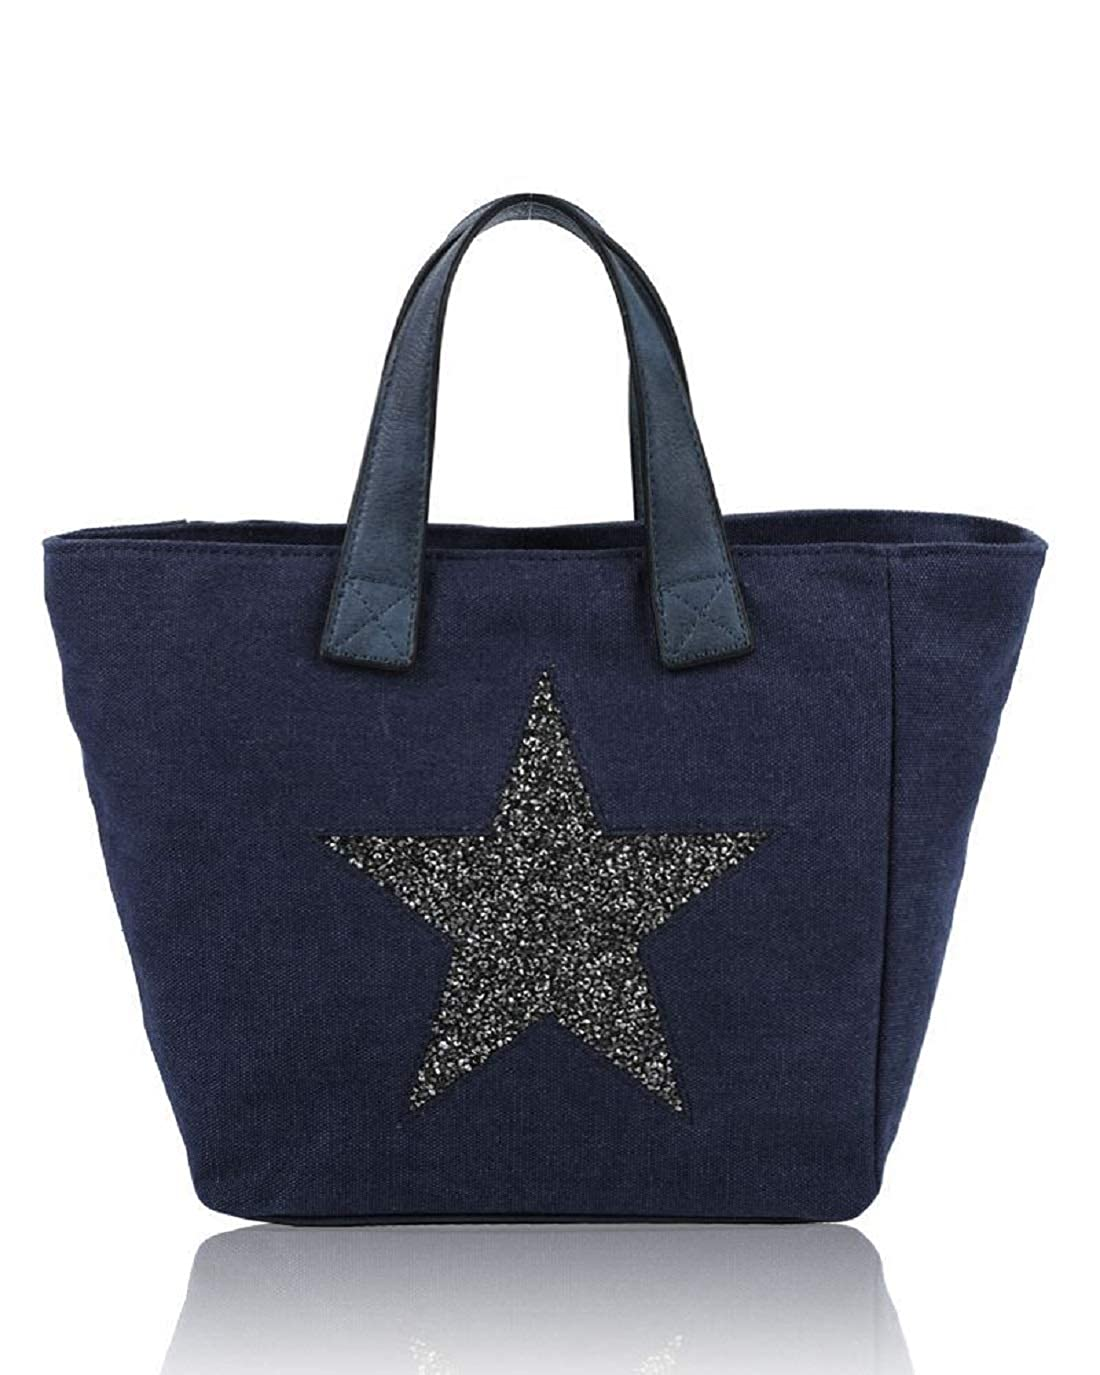 Navy Womens Ladies Canvas Tote Handbag Glitter Star Pattern Party Shoulder Bag